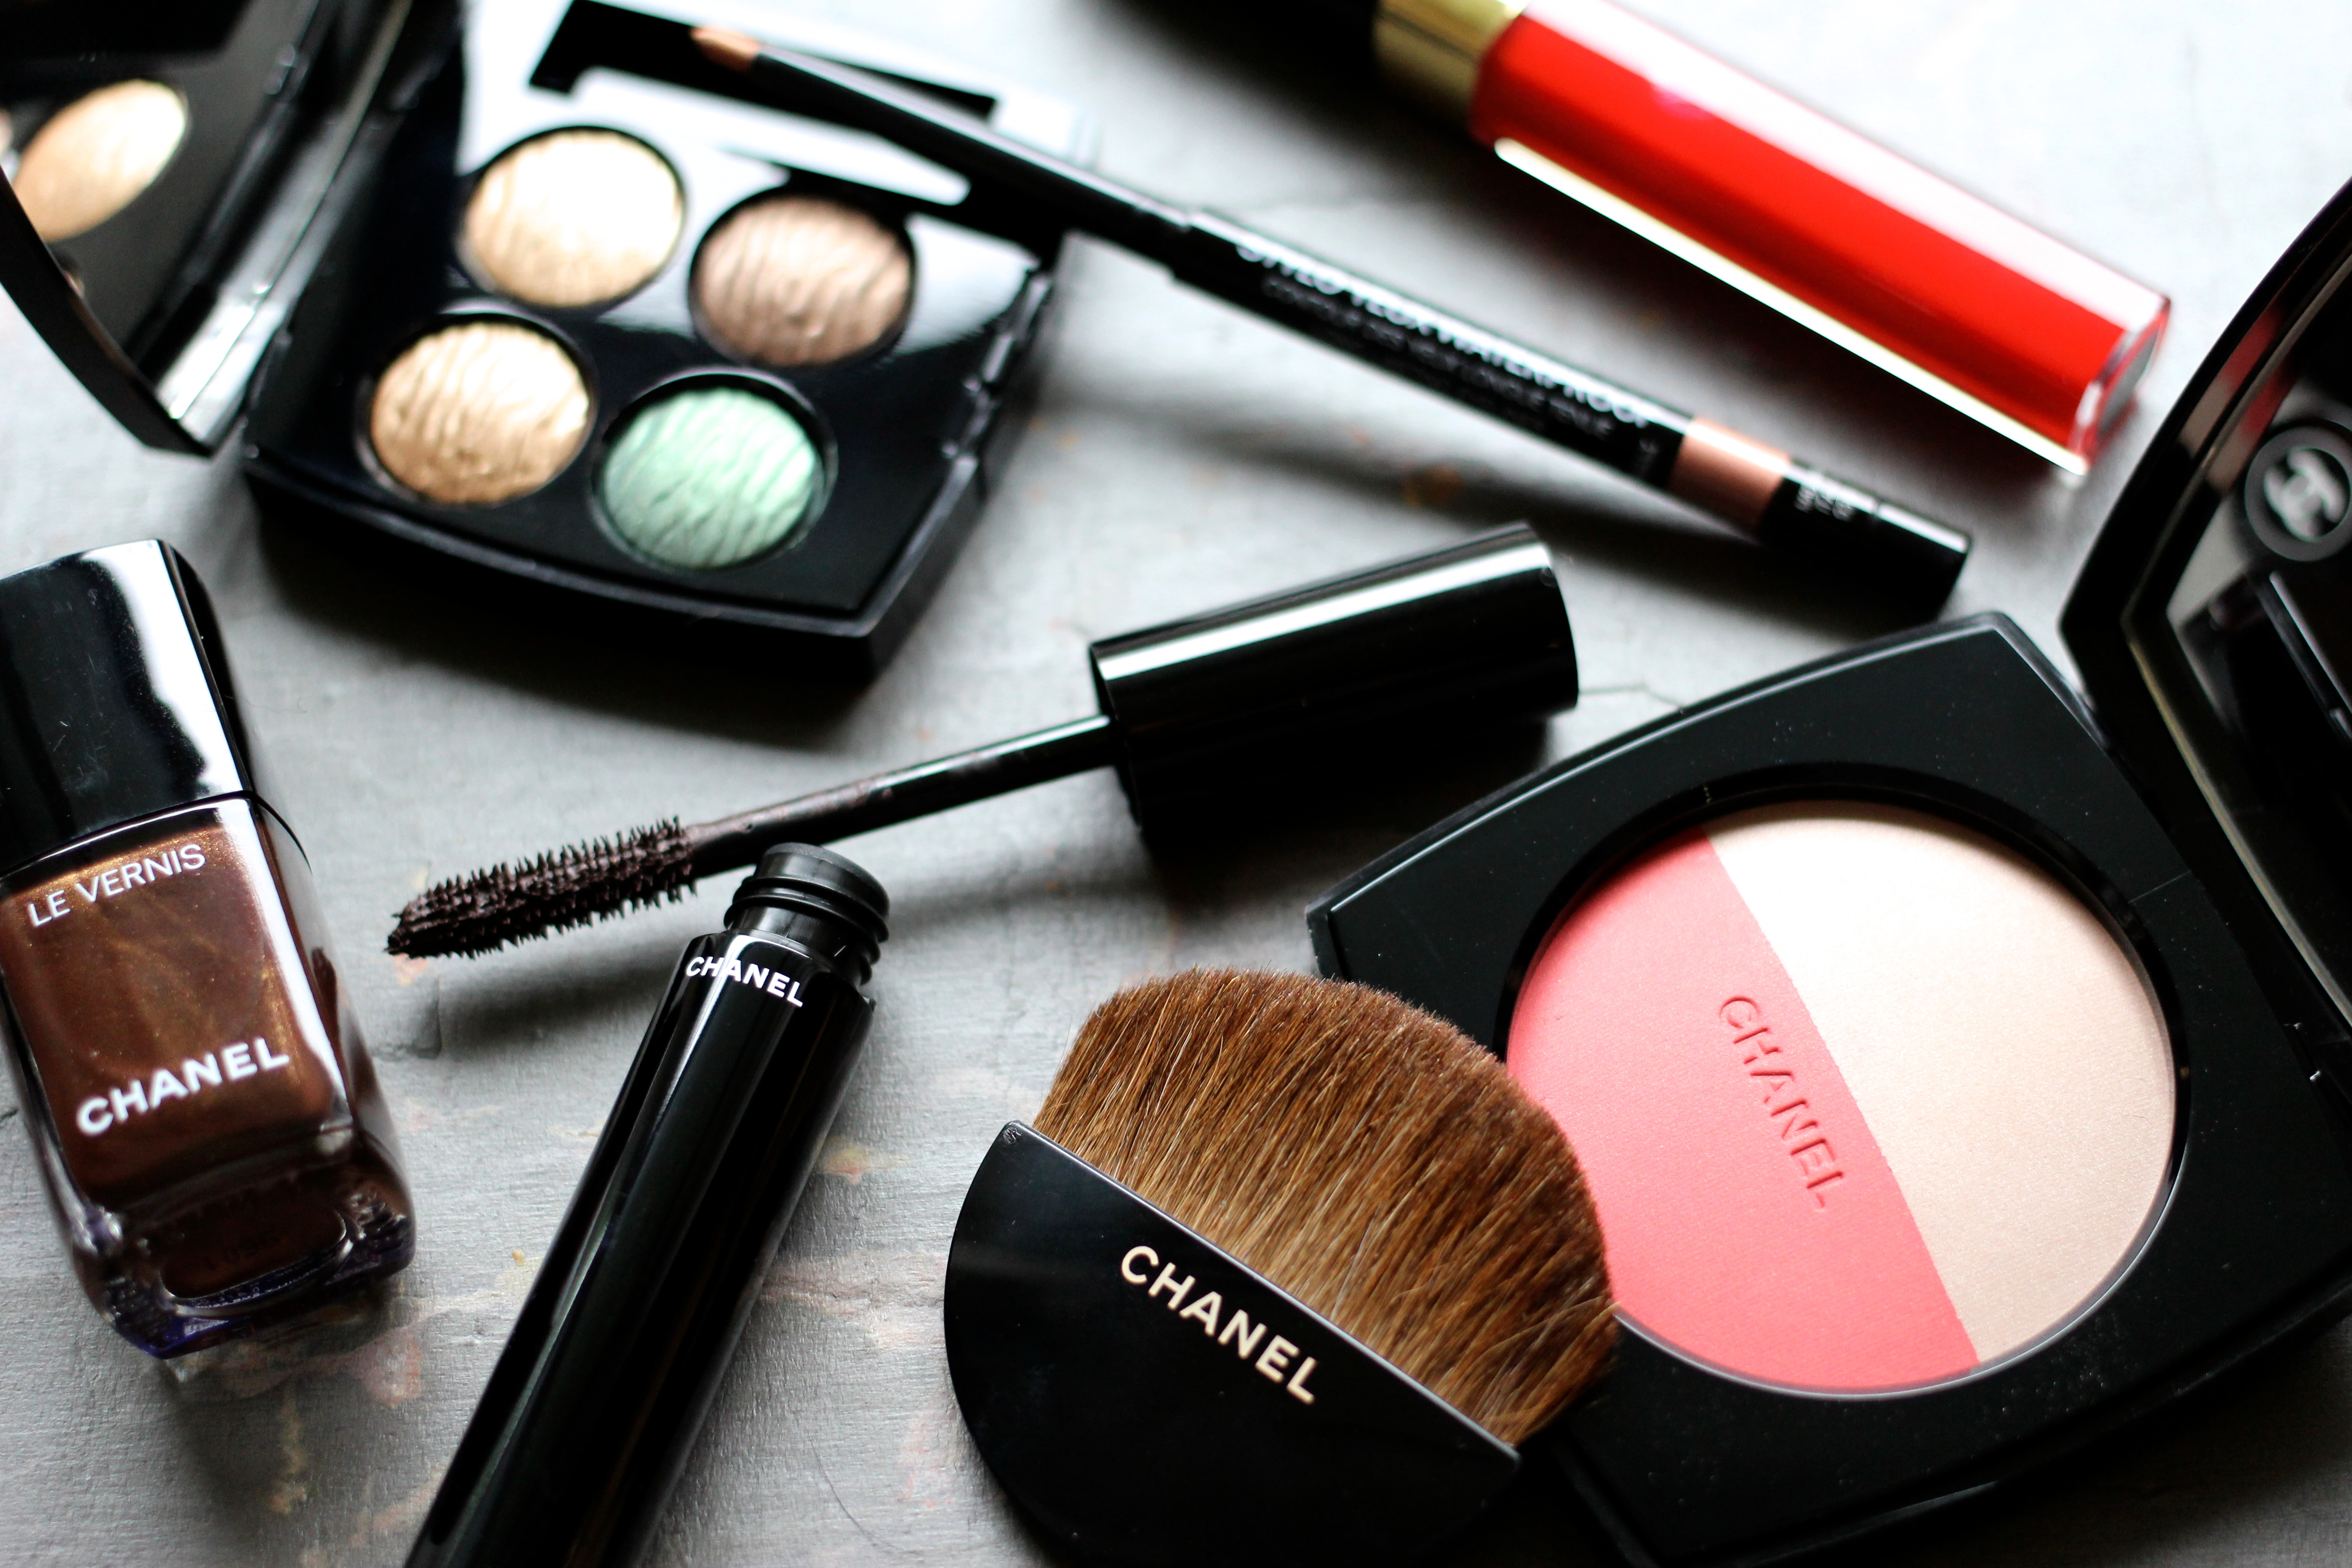 New Chanel Make-Up 2016 Review